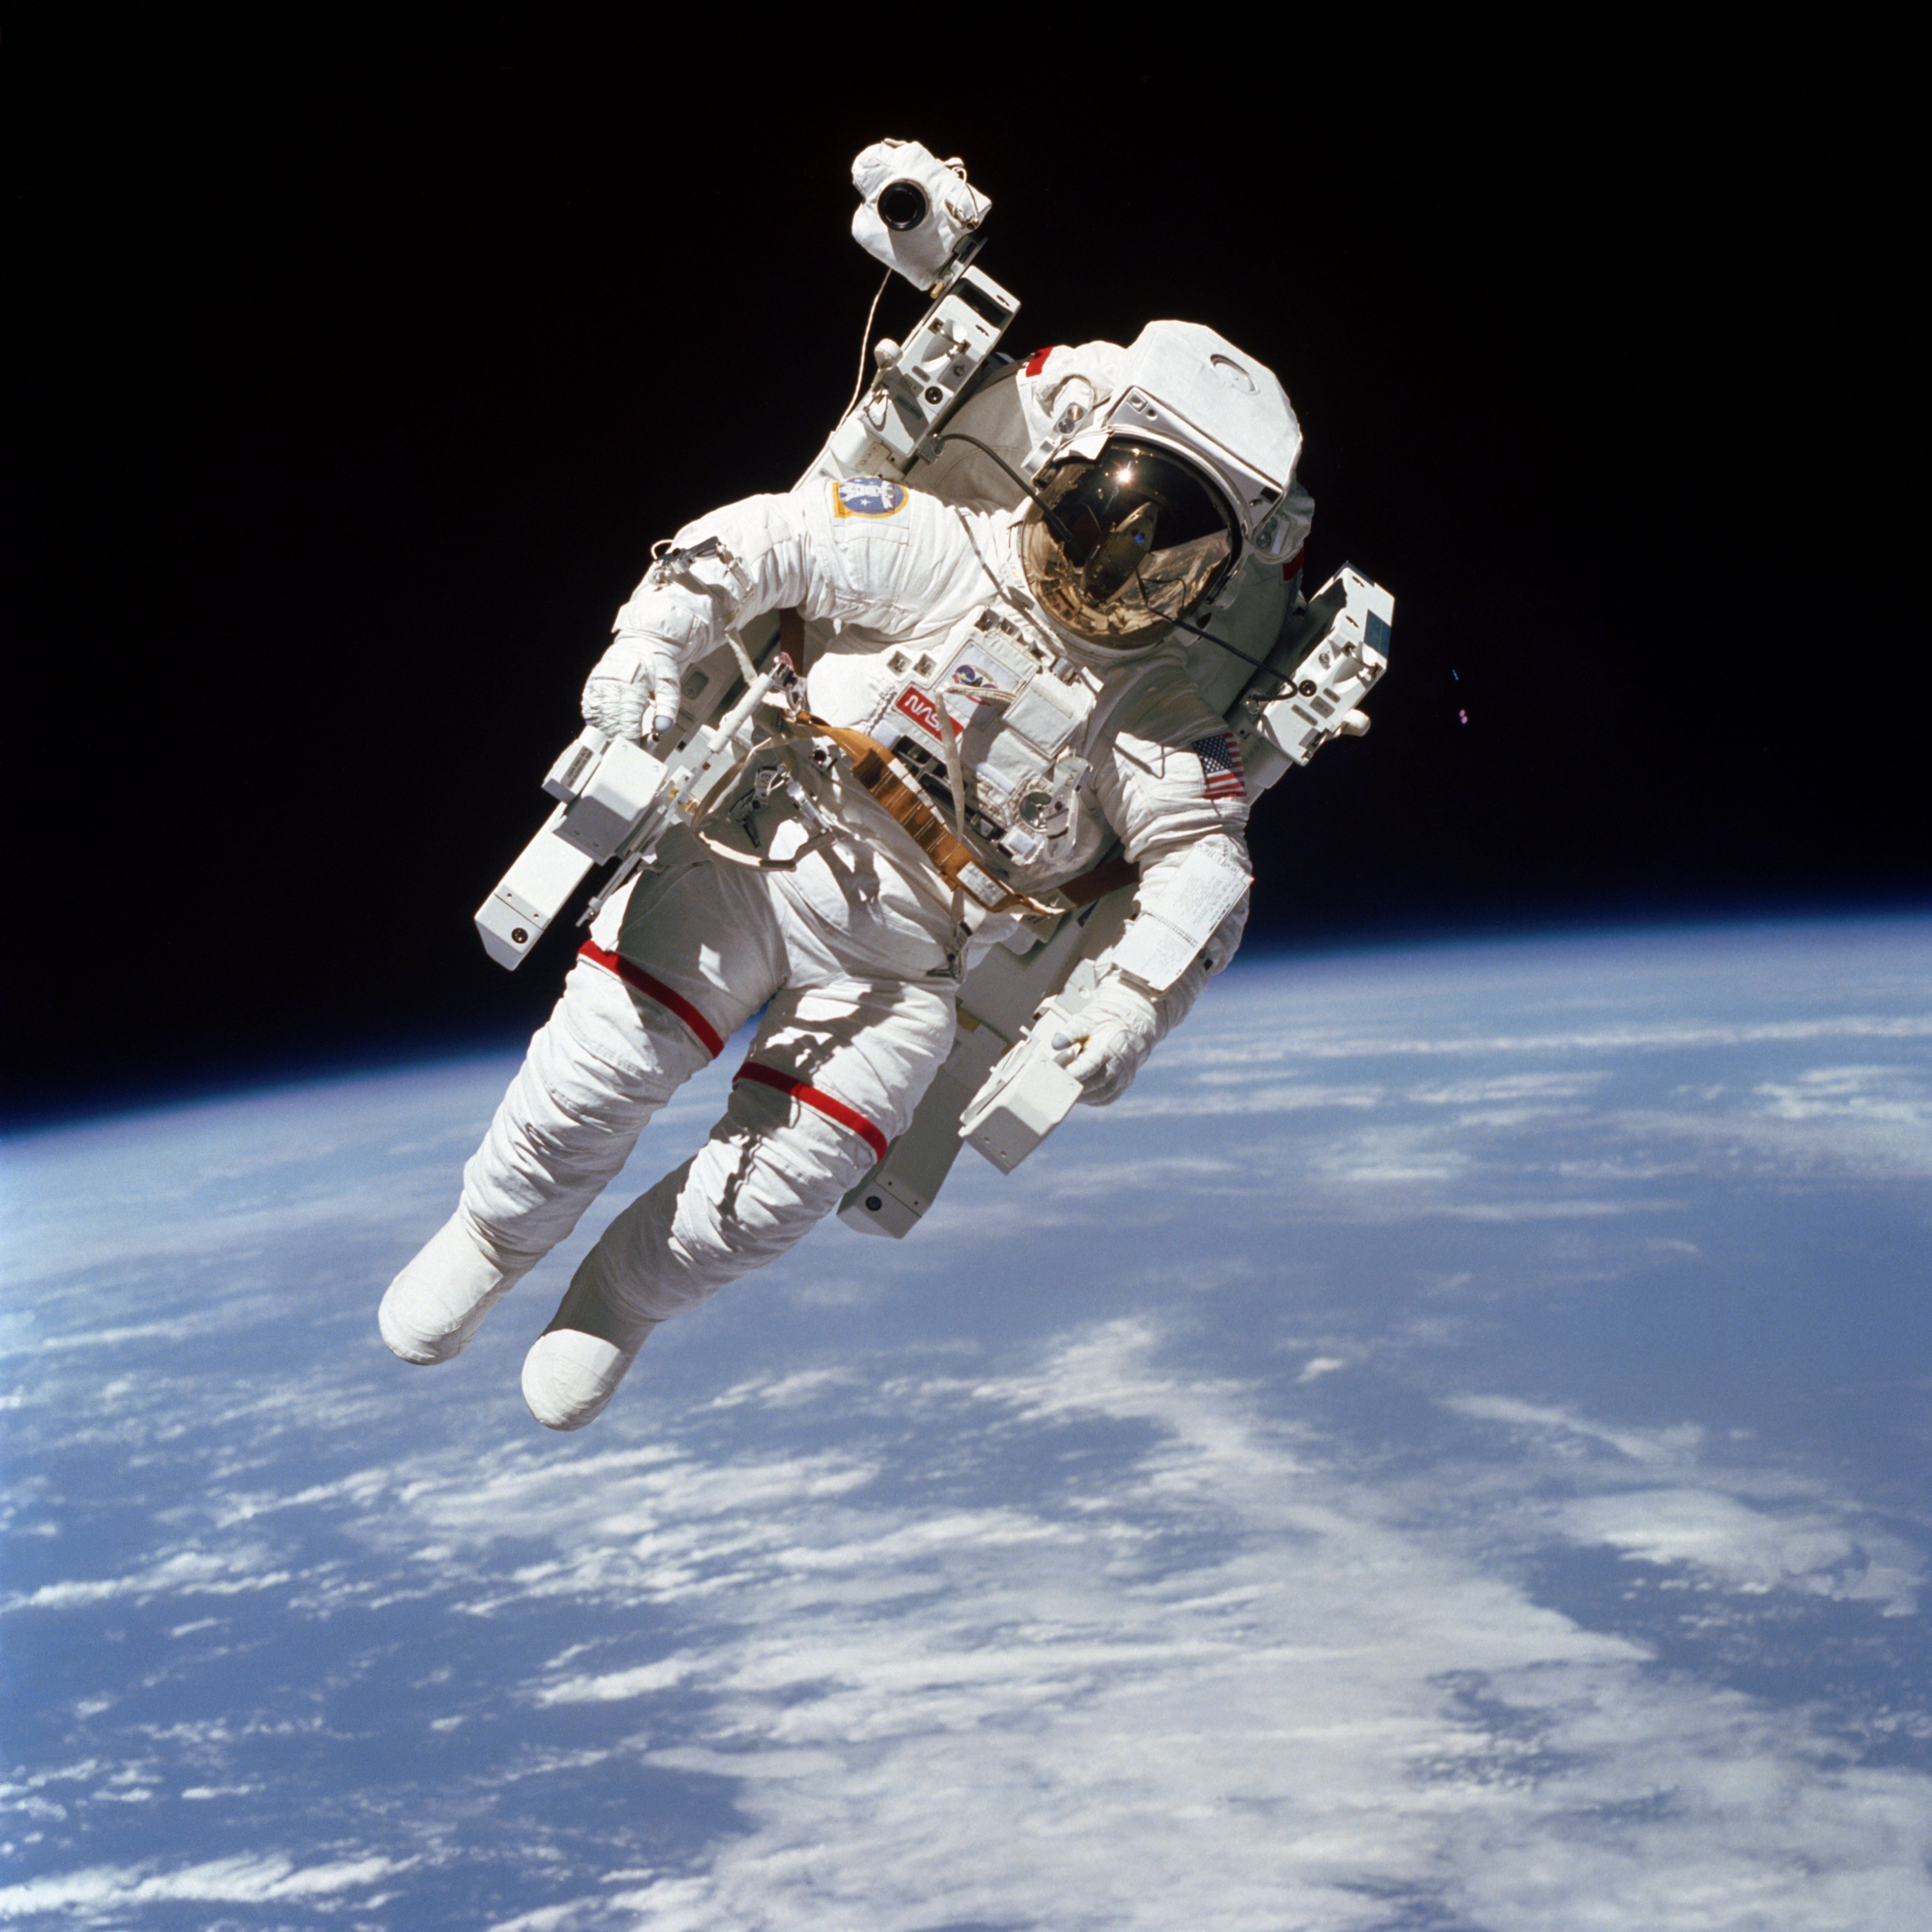 astronaut untethered space walk - photo #1